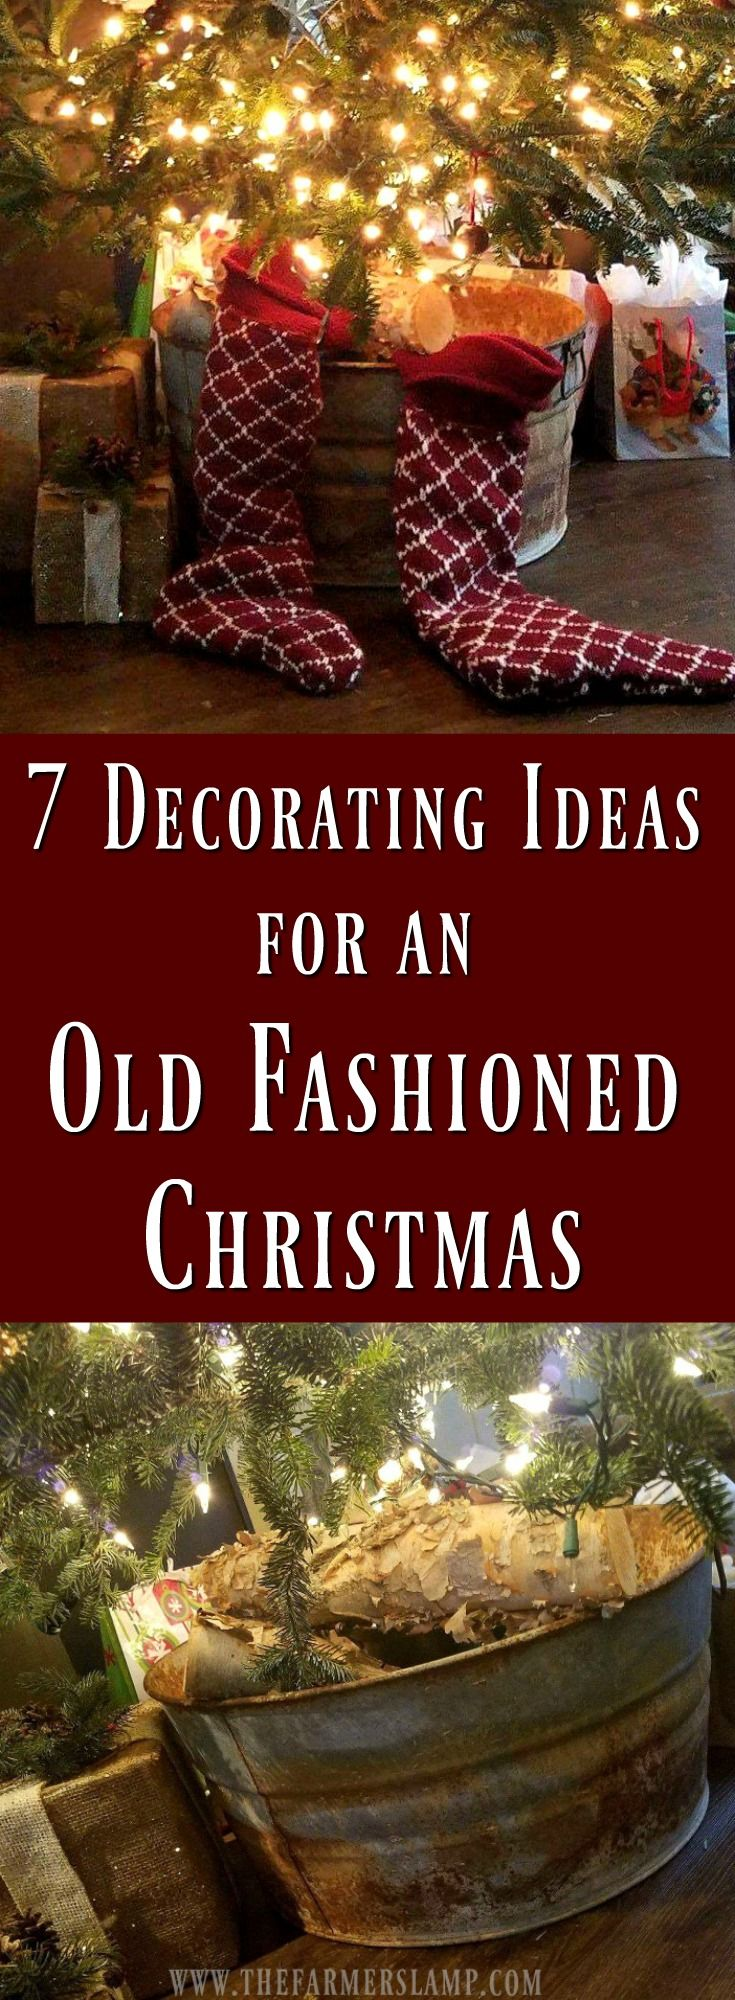 7 Decorating Ideas For An Old Fashioned Christmas | All Things ...